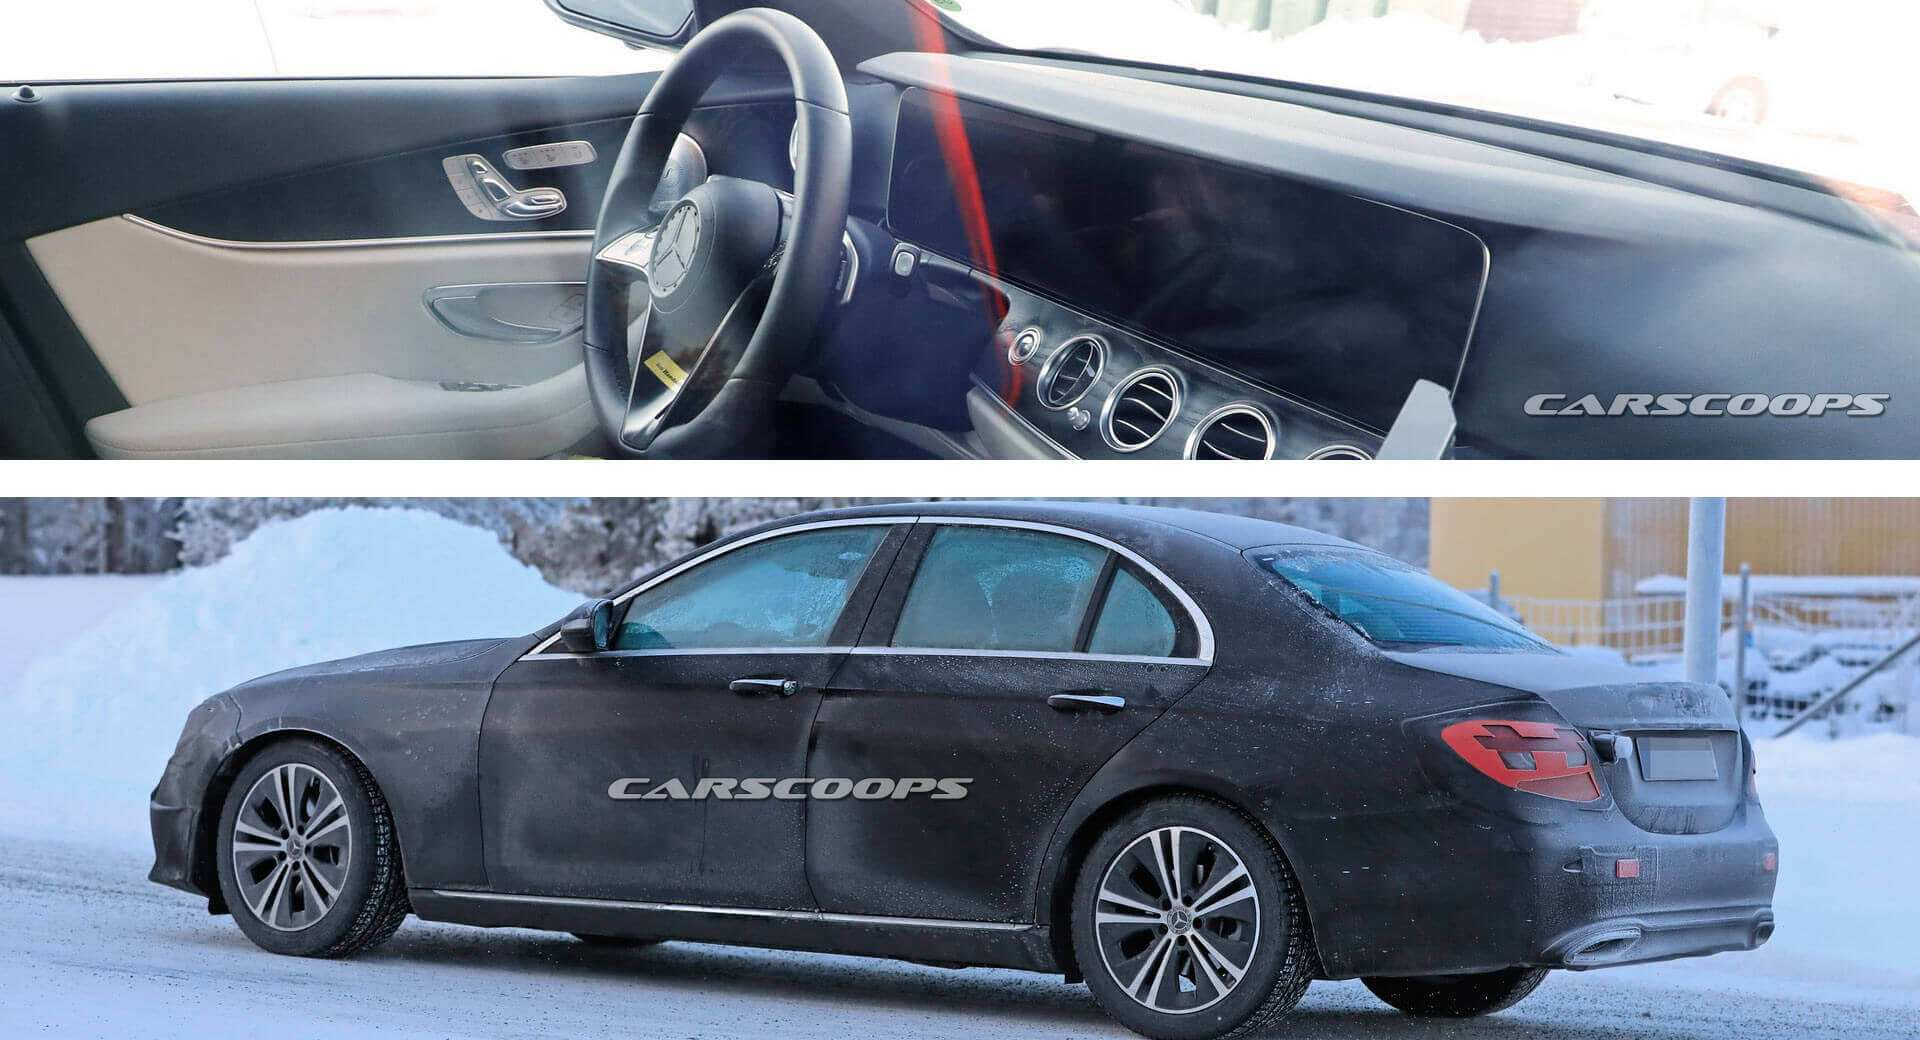 92 The 2020 Mercedes Cls Class Overview